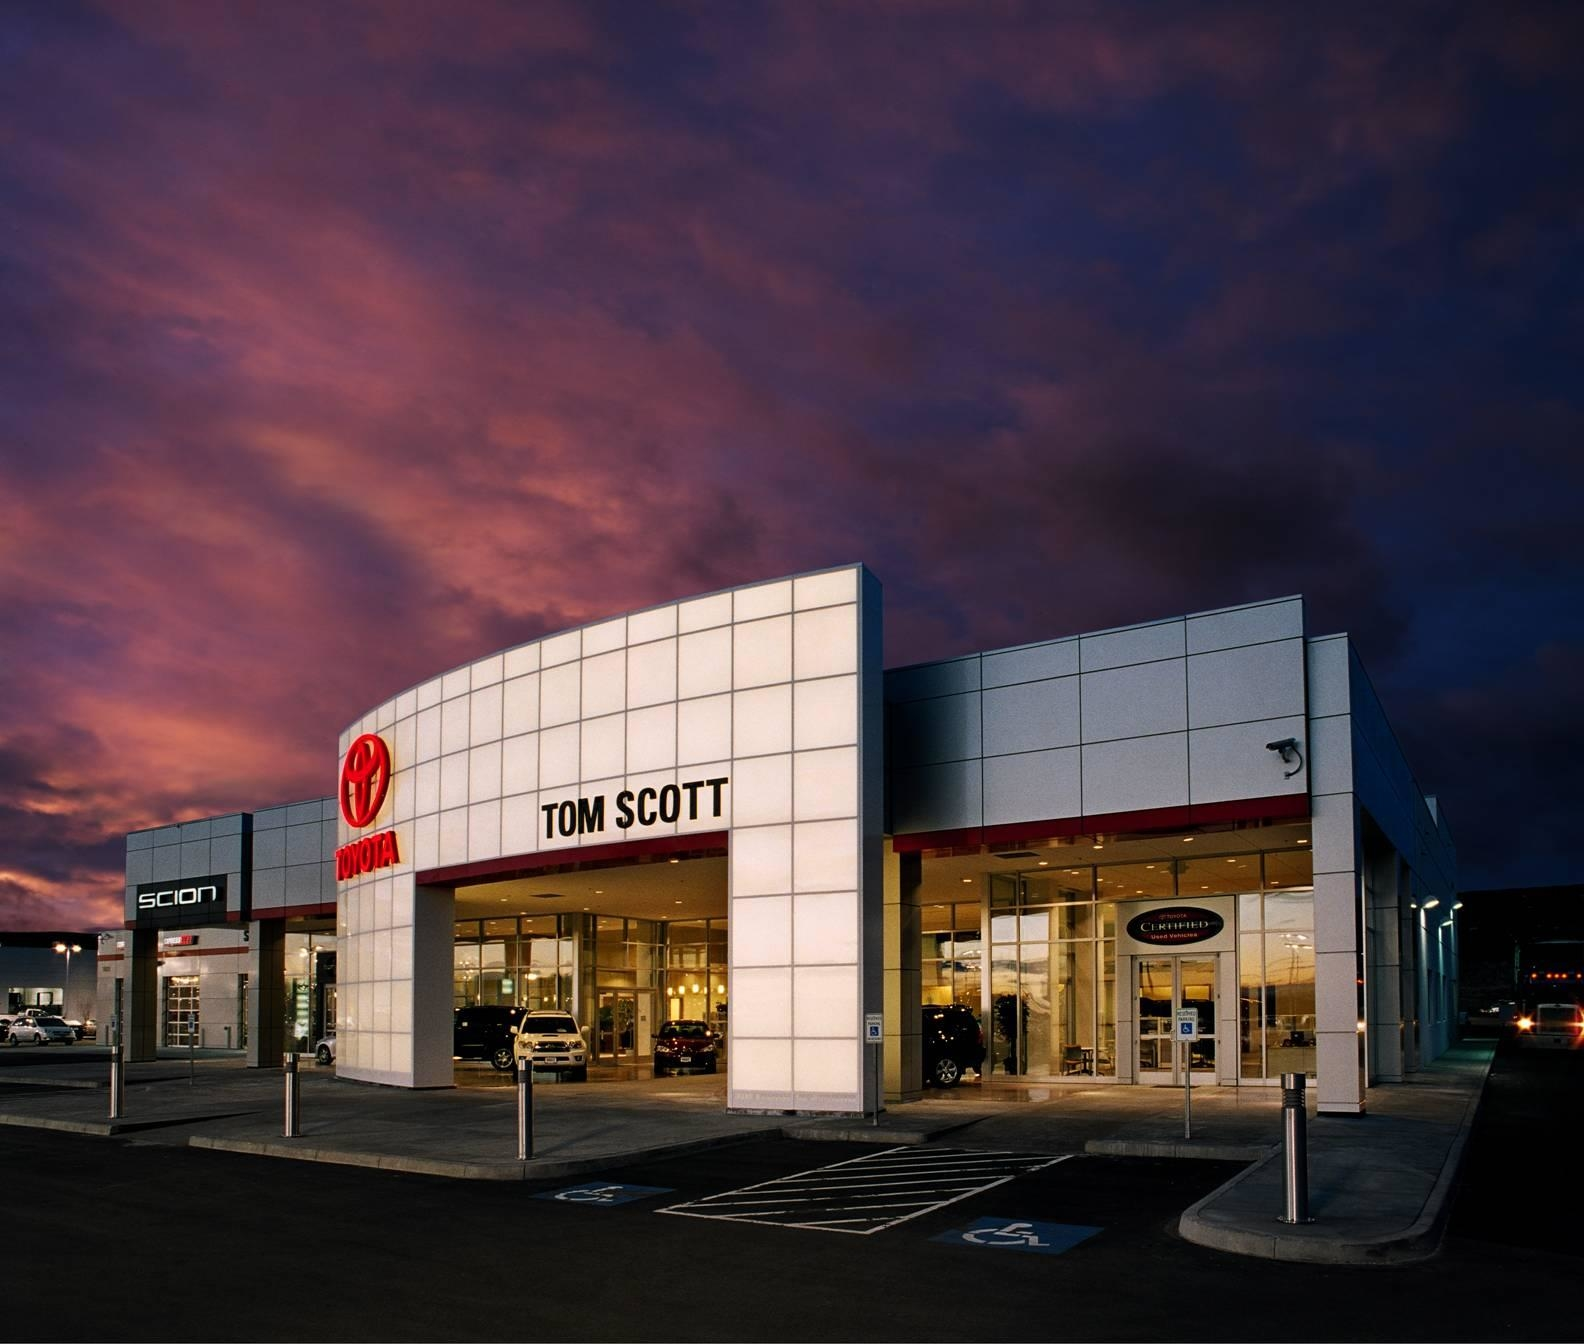 tom scott toyota in nampa id auto dealers yellow pages directory inc. Black Bedroom Furniture Sets. Home Design Ideas